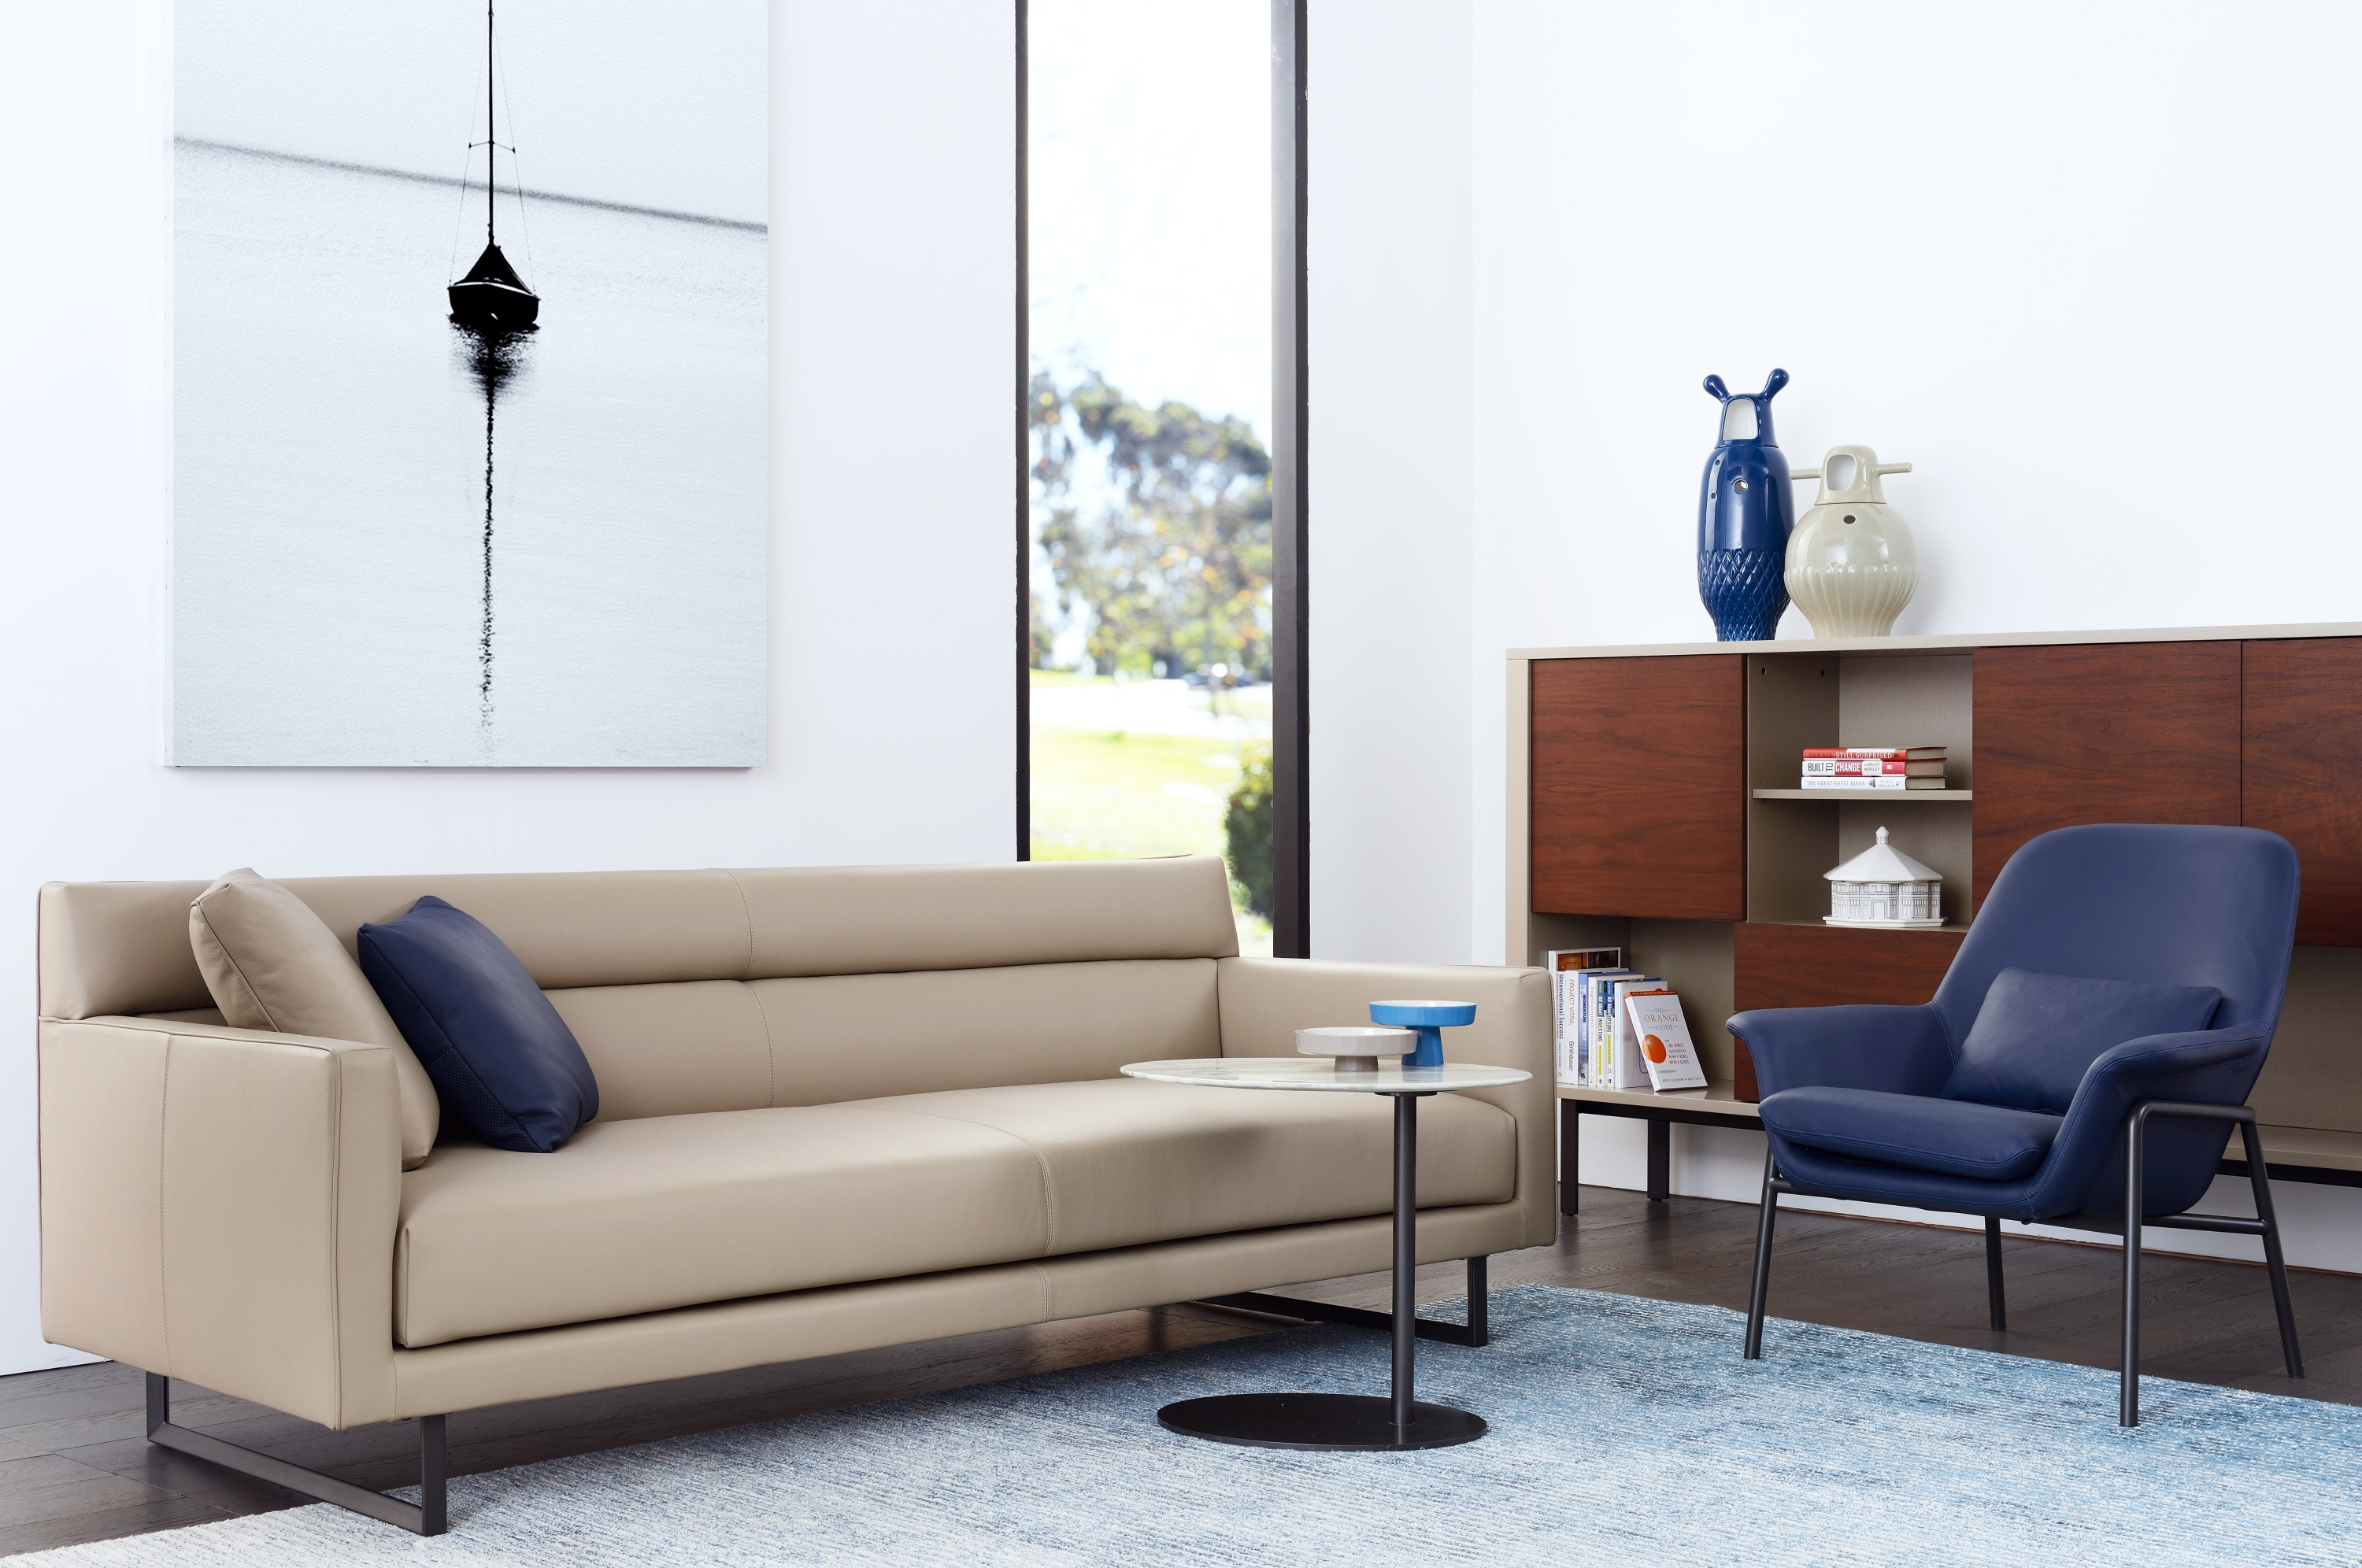 Camerich Sofa Buying Guide - UK Lifestyle Blog